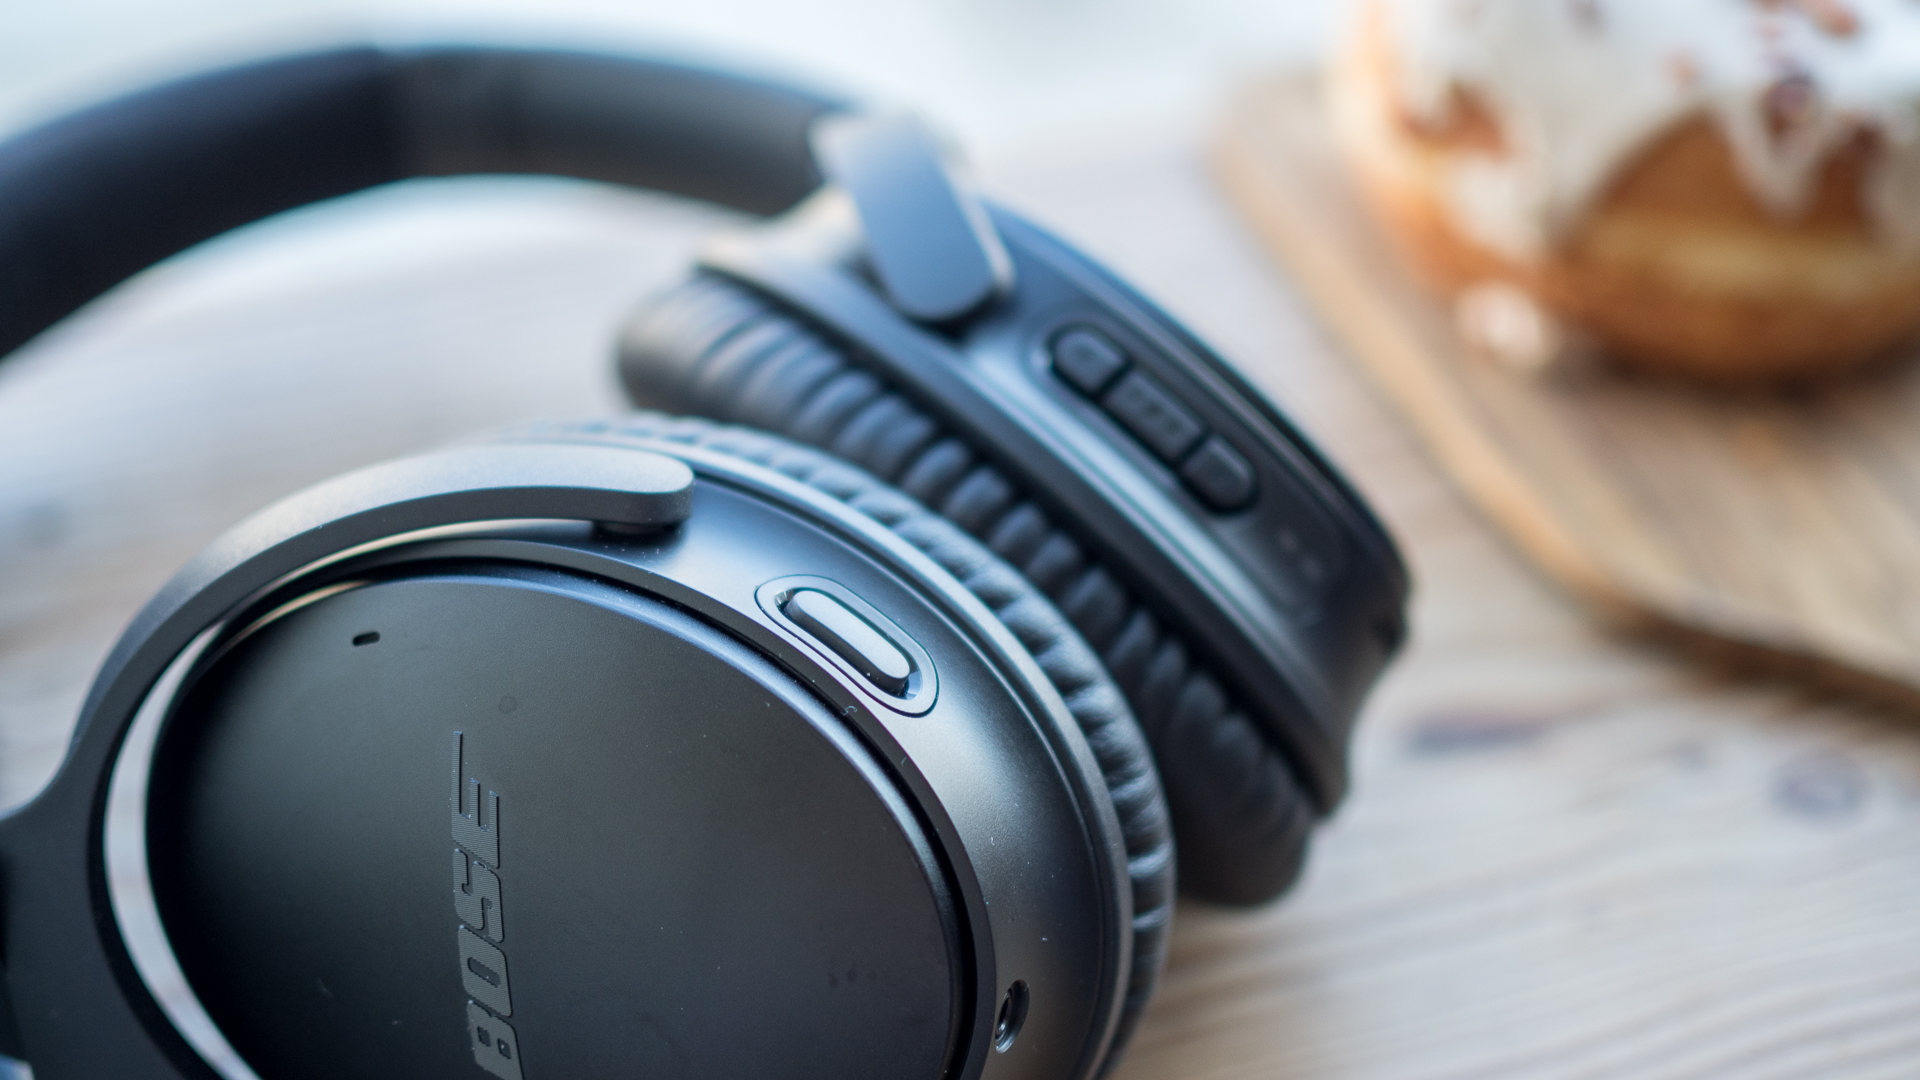 cd33c9695a0 The best cheap Bose headphone sales and prices on Amazon Prime Day 2019 |  TechRadar